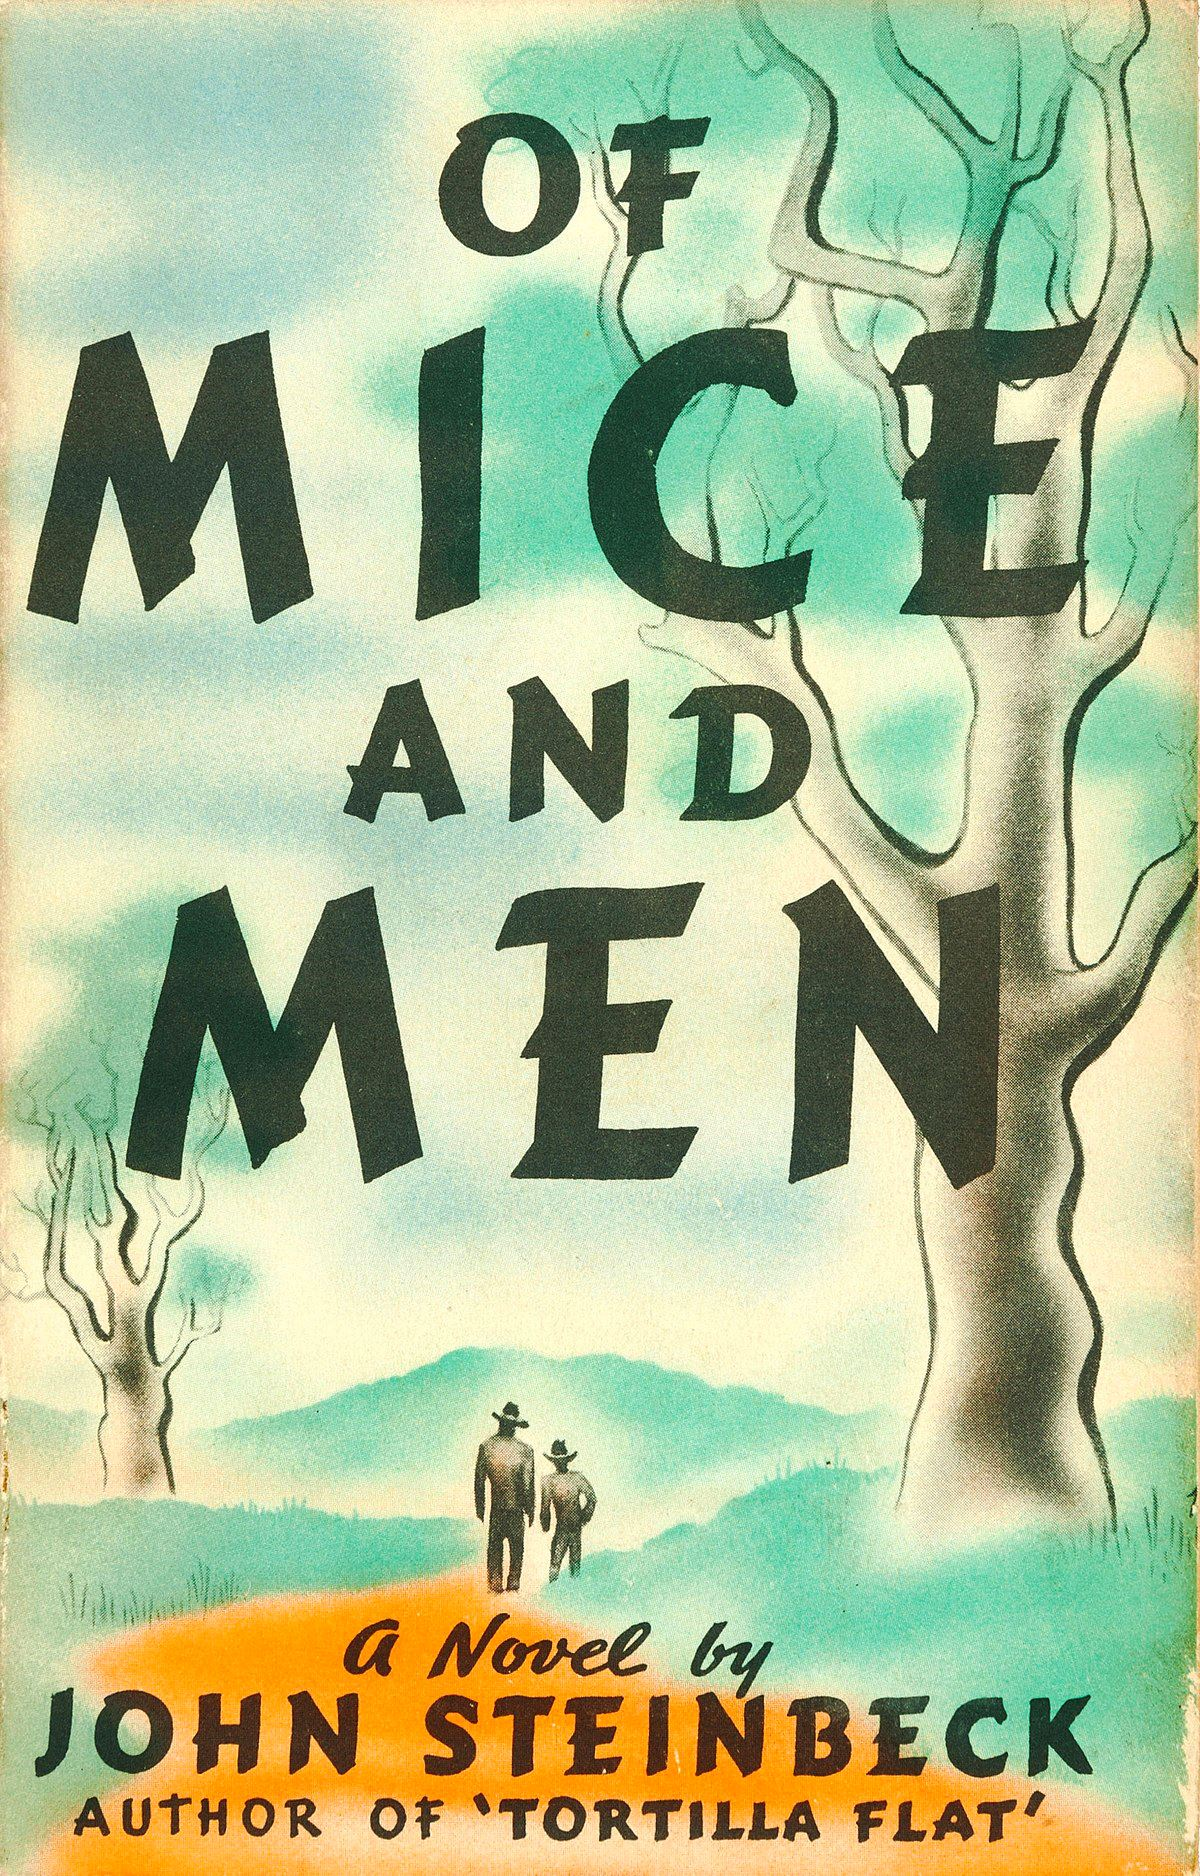 of mice and men Opens in new window